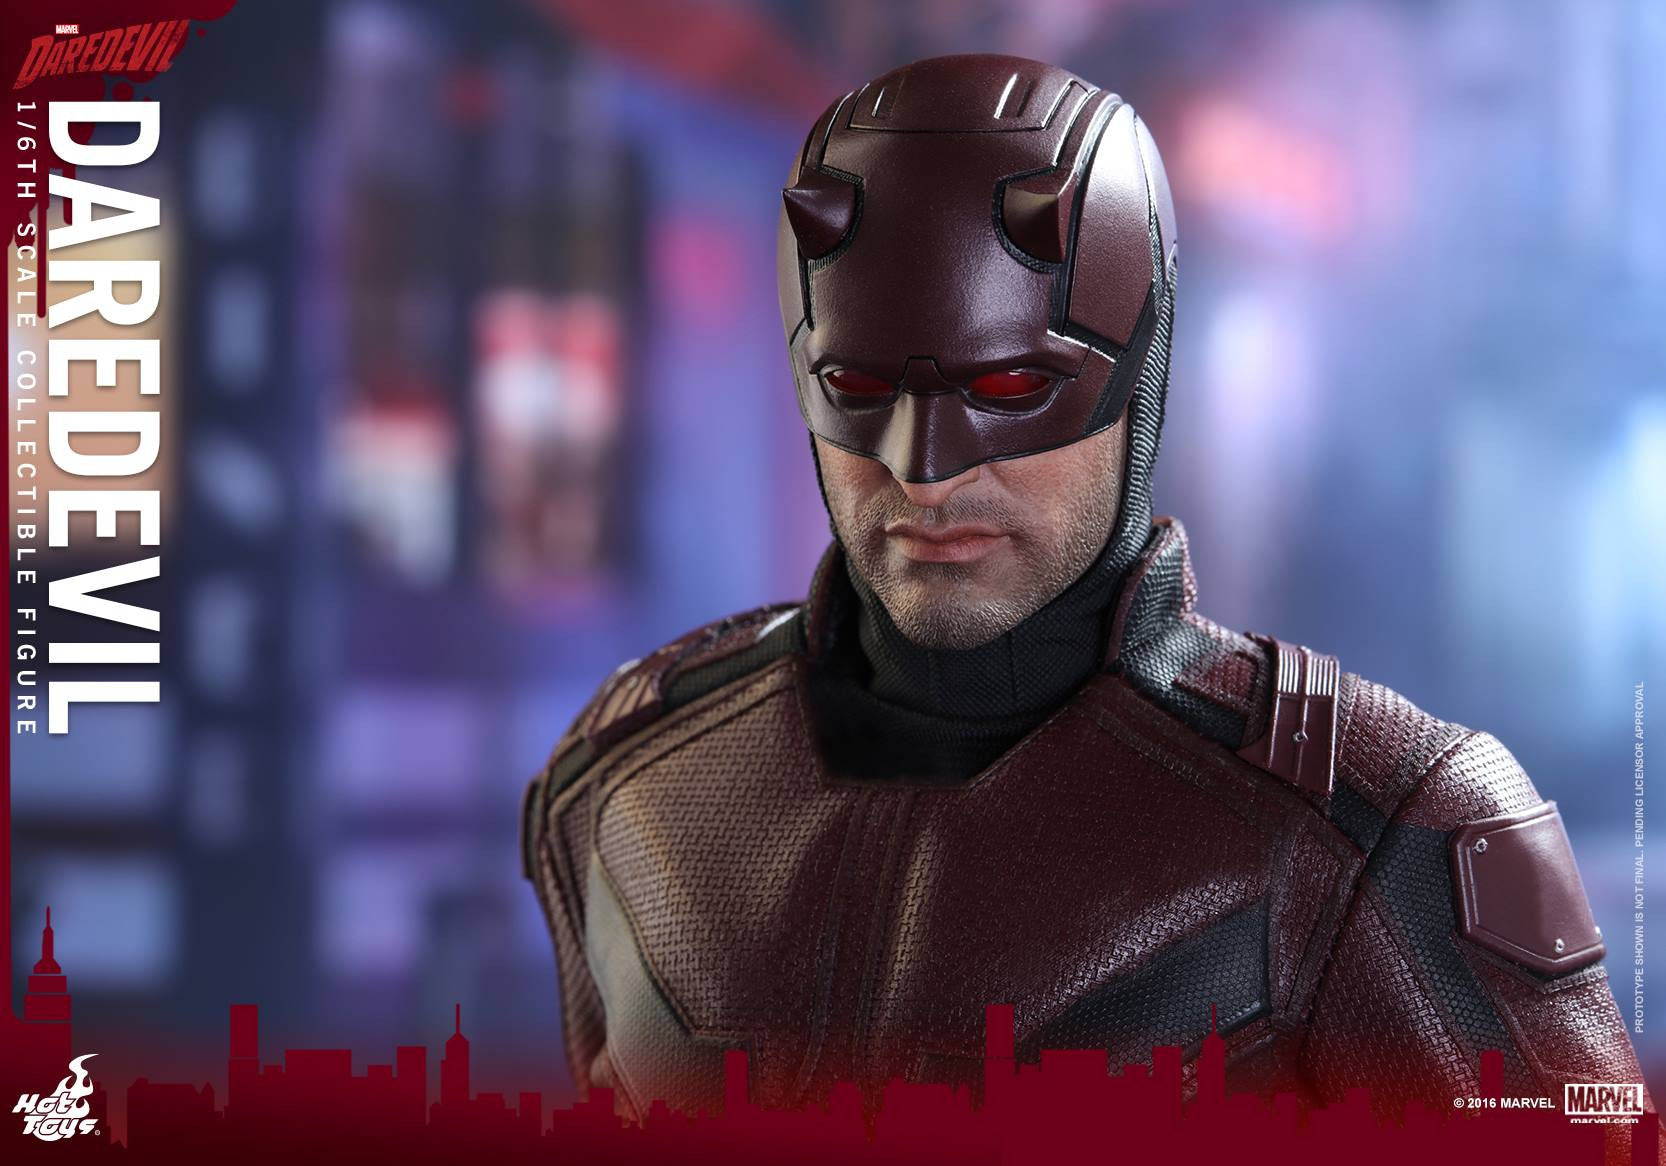 Hot Toys - TMS003 - Marvel's Daredevil - Daredevil - Marvelous Toys - 15